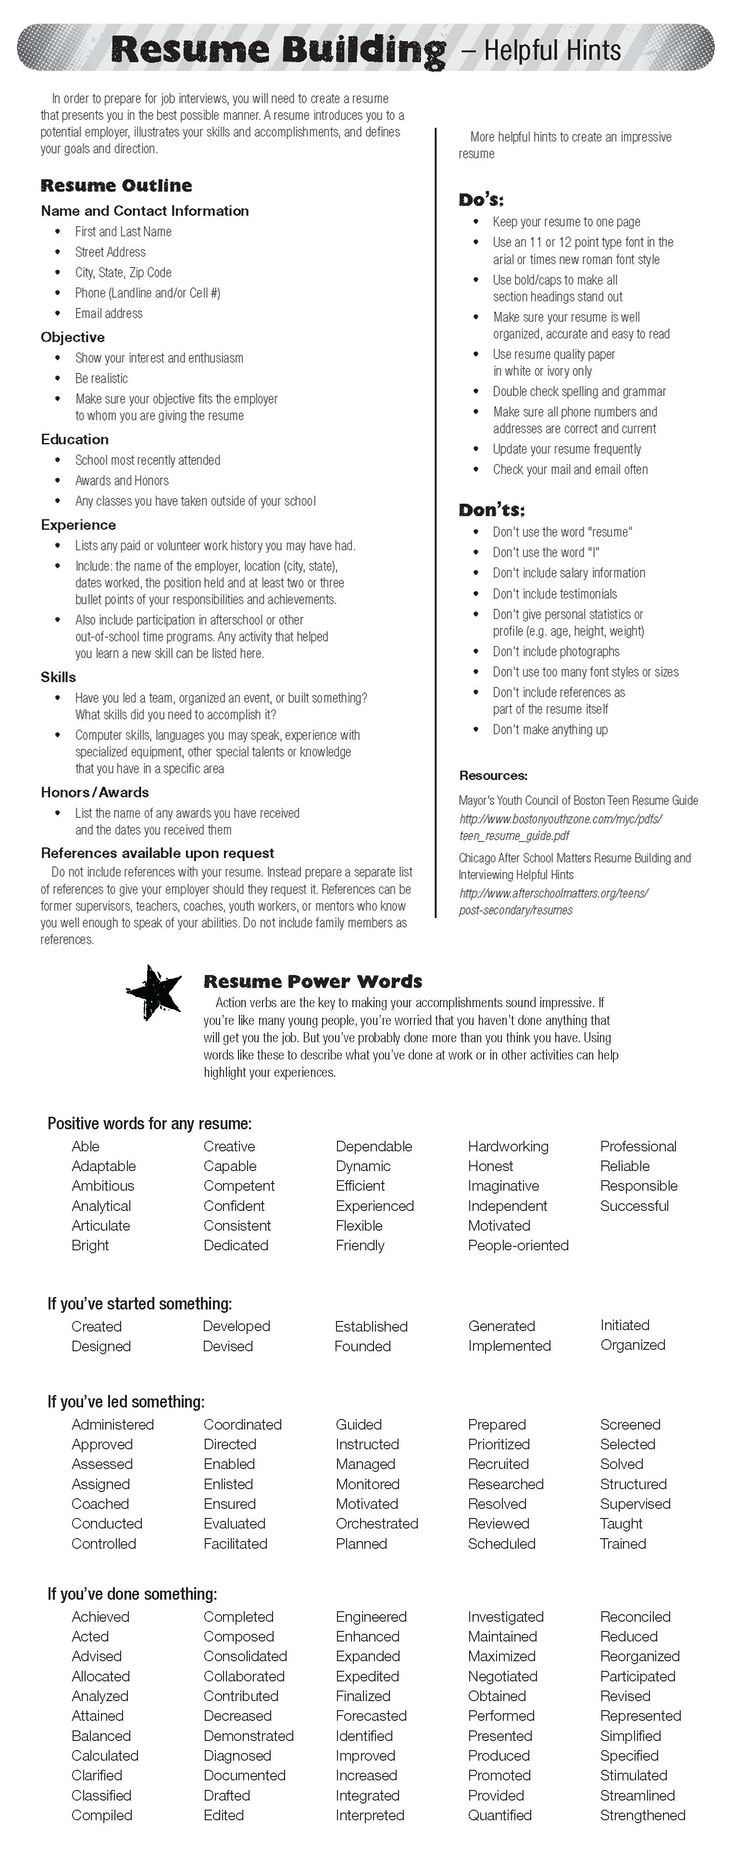 Opposenewapstandardsus  Surprising  Ideas About Resume On Pinterest  Cv Format Resume Cv And  With Likable  Ideas About Resume On Pinterest  Cv Format Resume Cv And Resume Templates With Enchanting The Google Resume Also Updated Resume In Addition Nanny Resume Template And Functional Resume Templates As Well As Help Making A Resume Additionally Free Resume Writing Services From Pinterestcom With Opposenewapstandardsus  Likable  Ideas About Resume On Pinterest  Cv Format Resume Cv And  With Enchanting  Ideas About Resume On Pinterest  Cv Format Resume Cv And Resume Templates And Surprising The Google Resume Also Updated Resume In Addition Nanny Resume Template From Pinterestcom